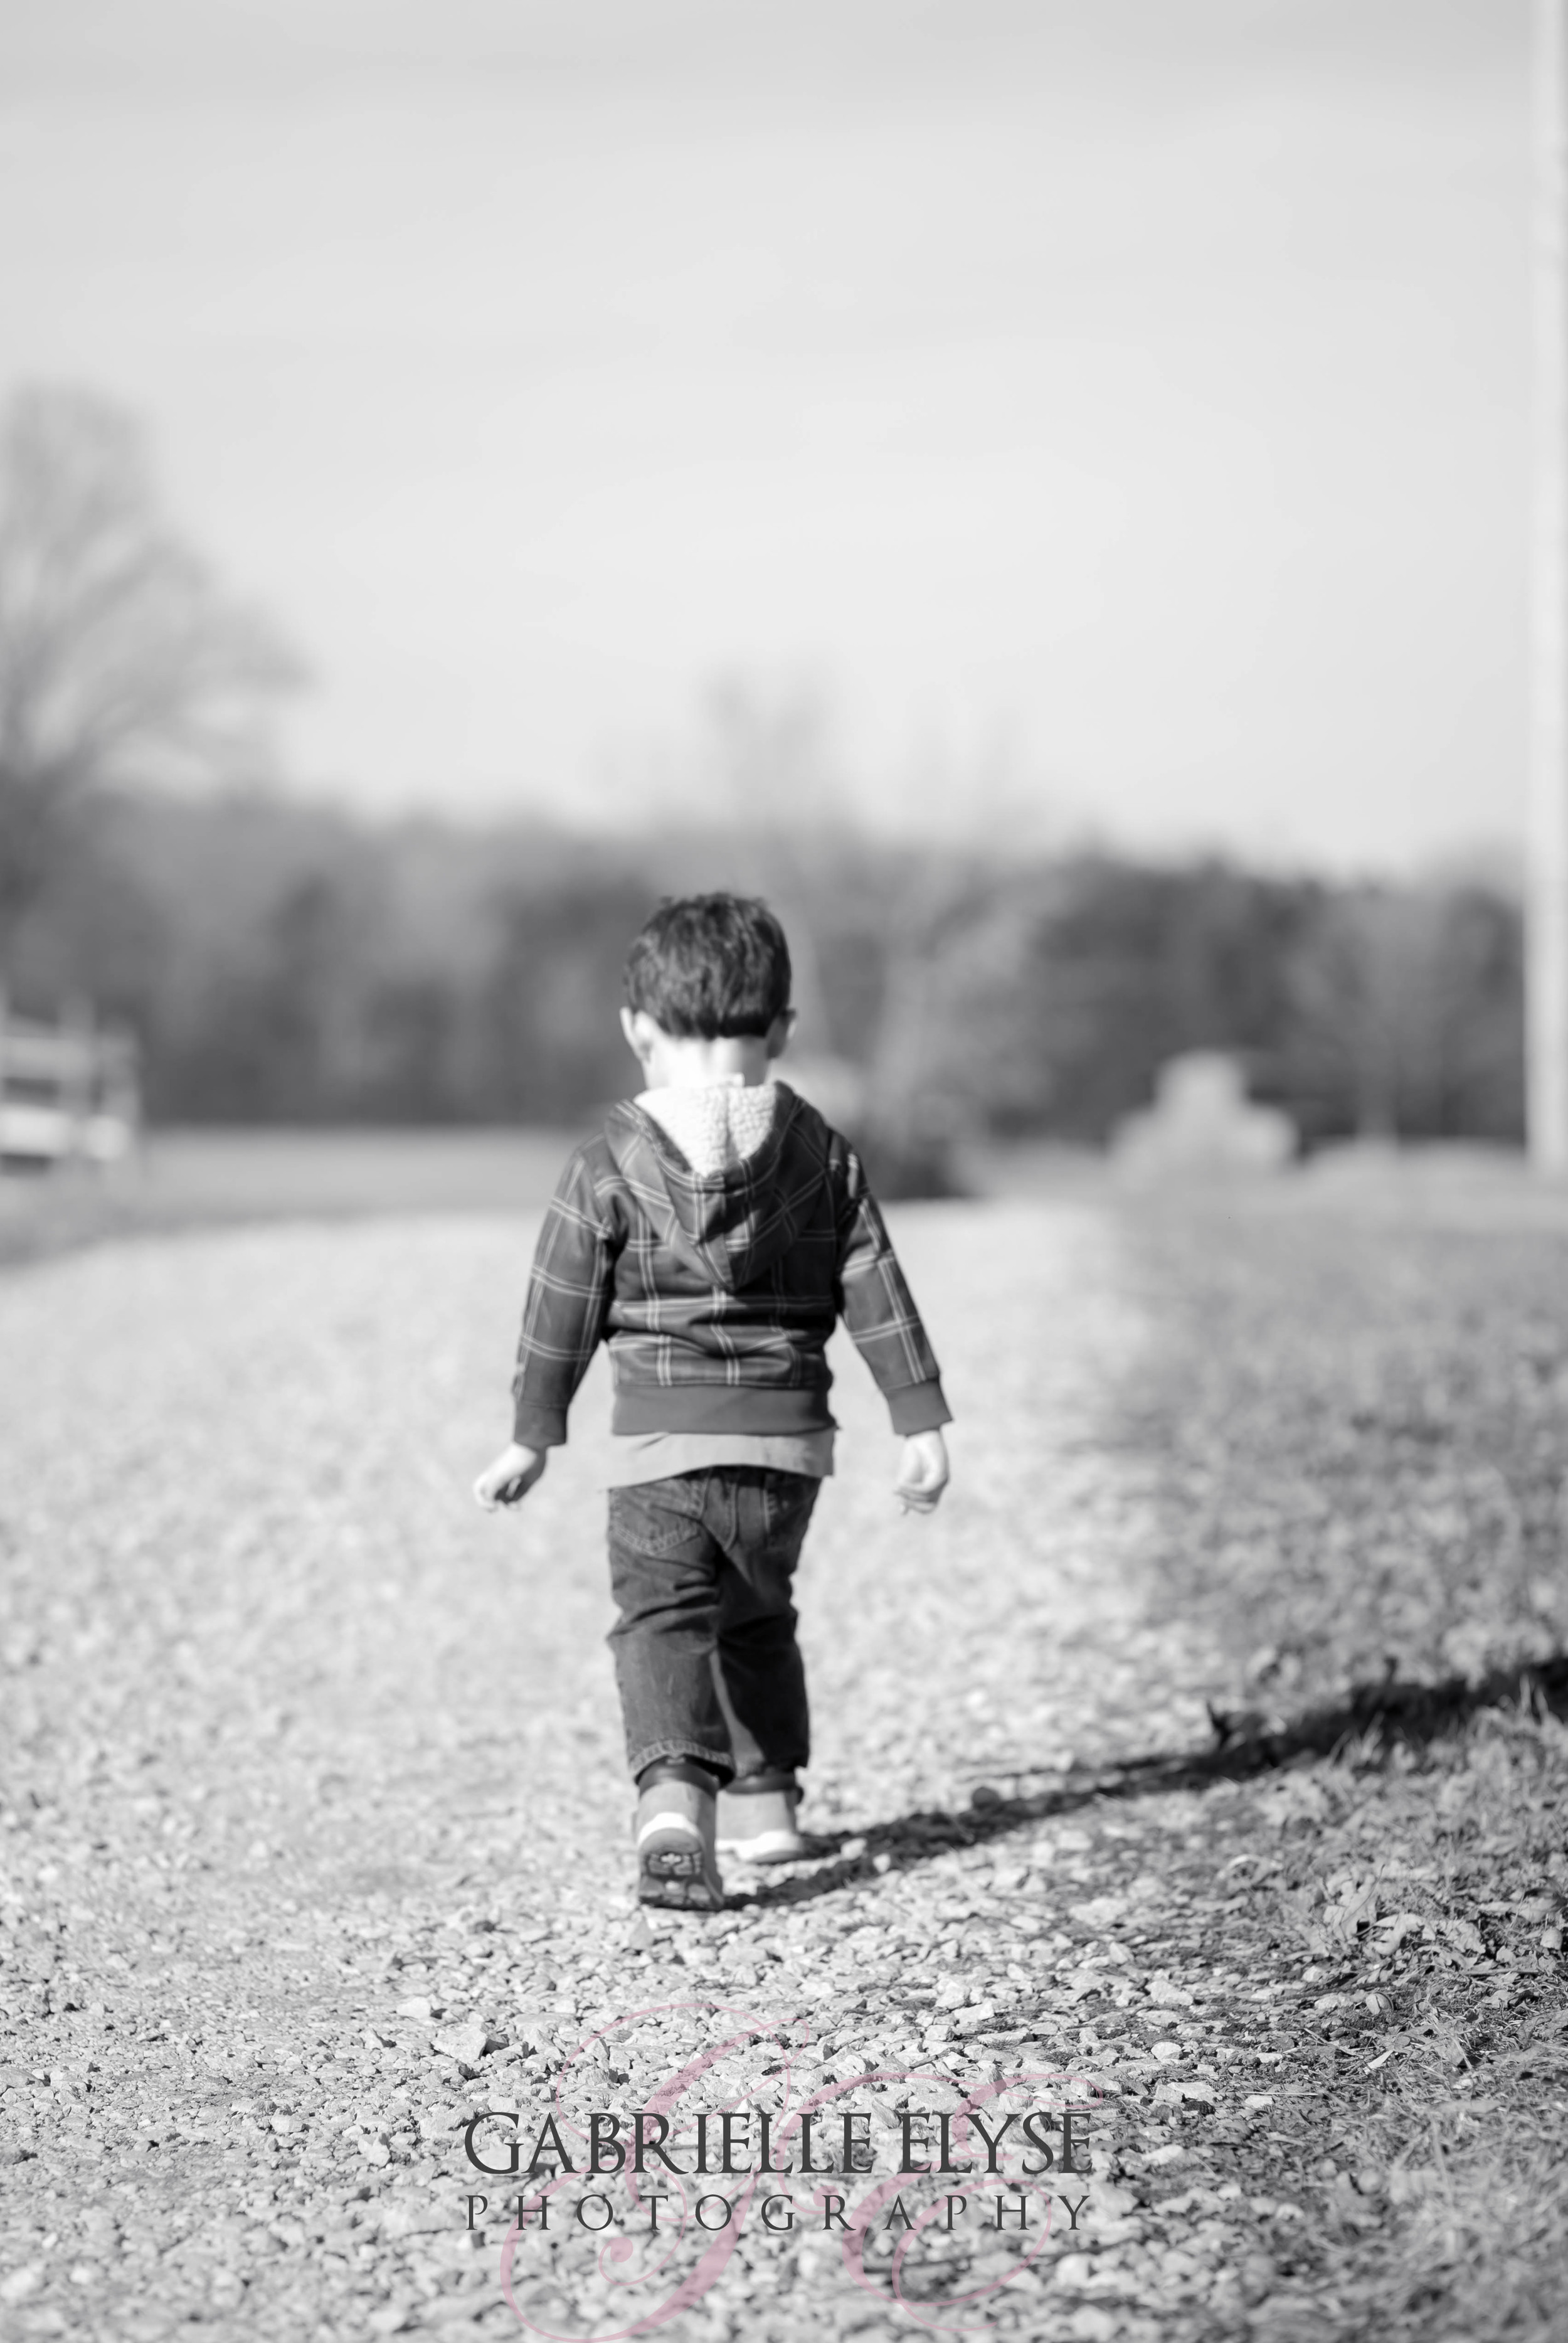 Just a boy walking alone with his thoughts